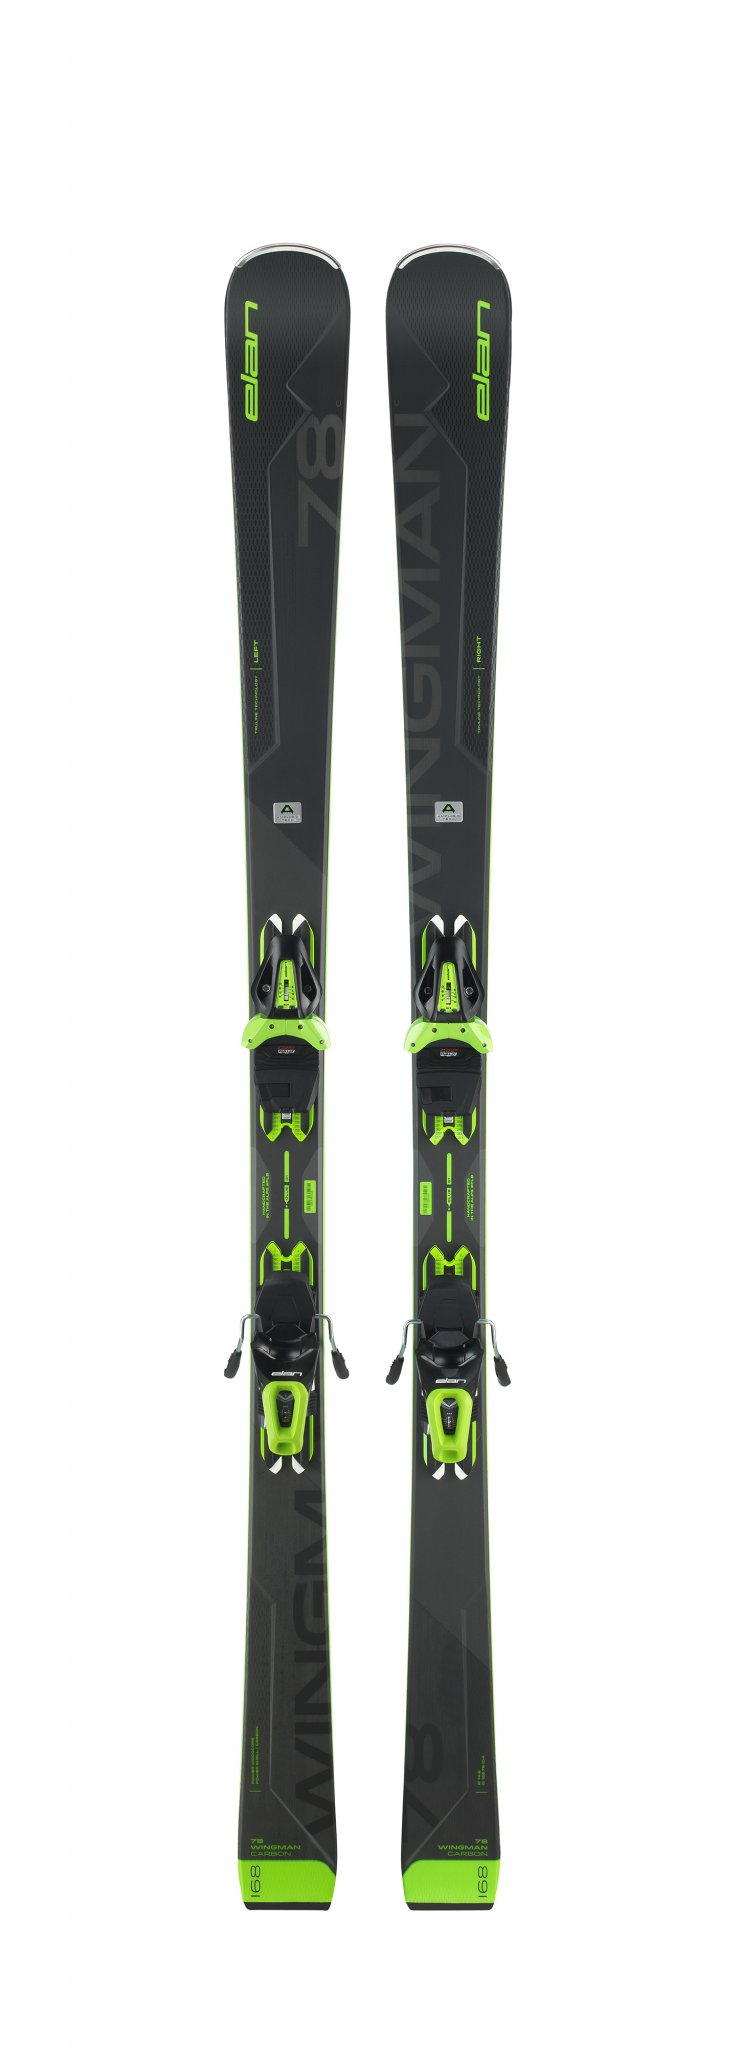 Image 0 of ELAN - WINGMAN 78 C PS Skis + EL 10 GW Binding - 2020